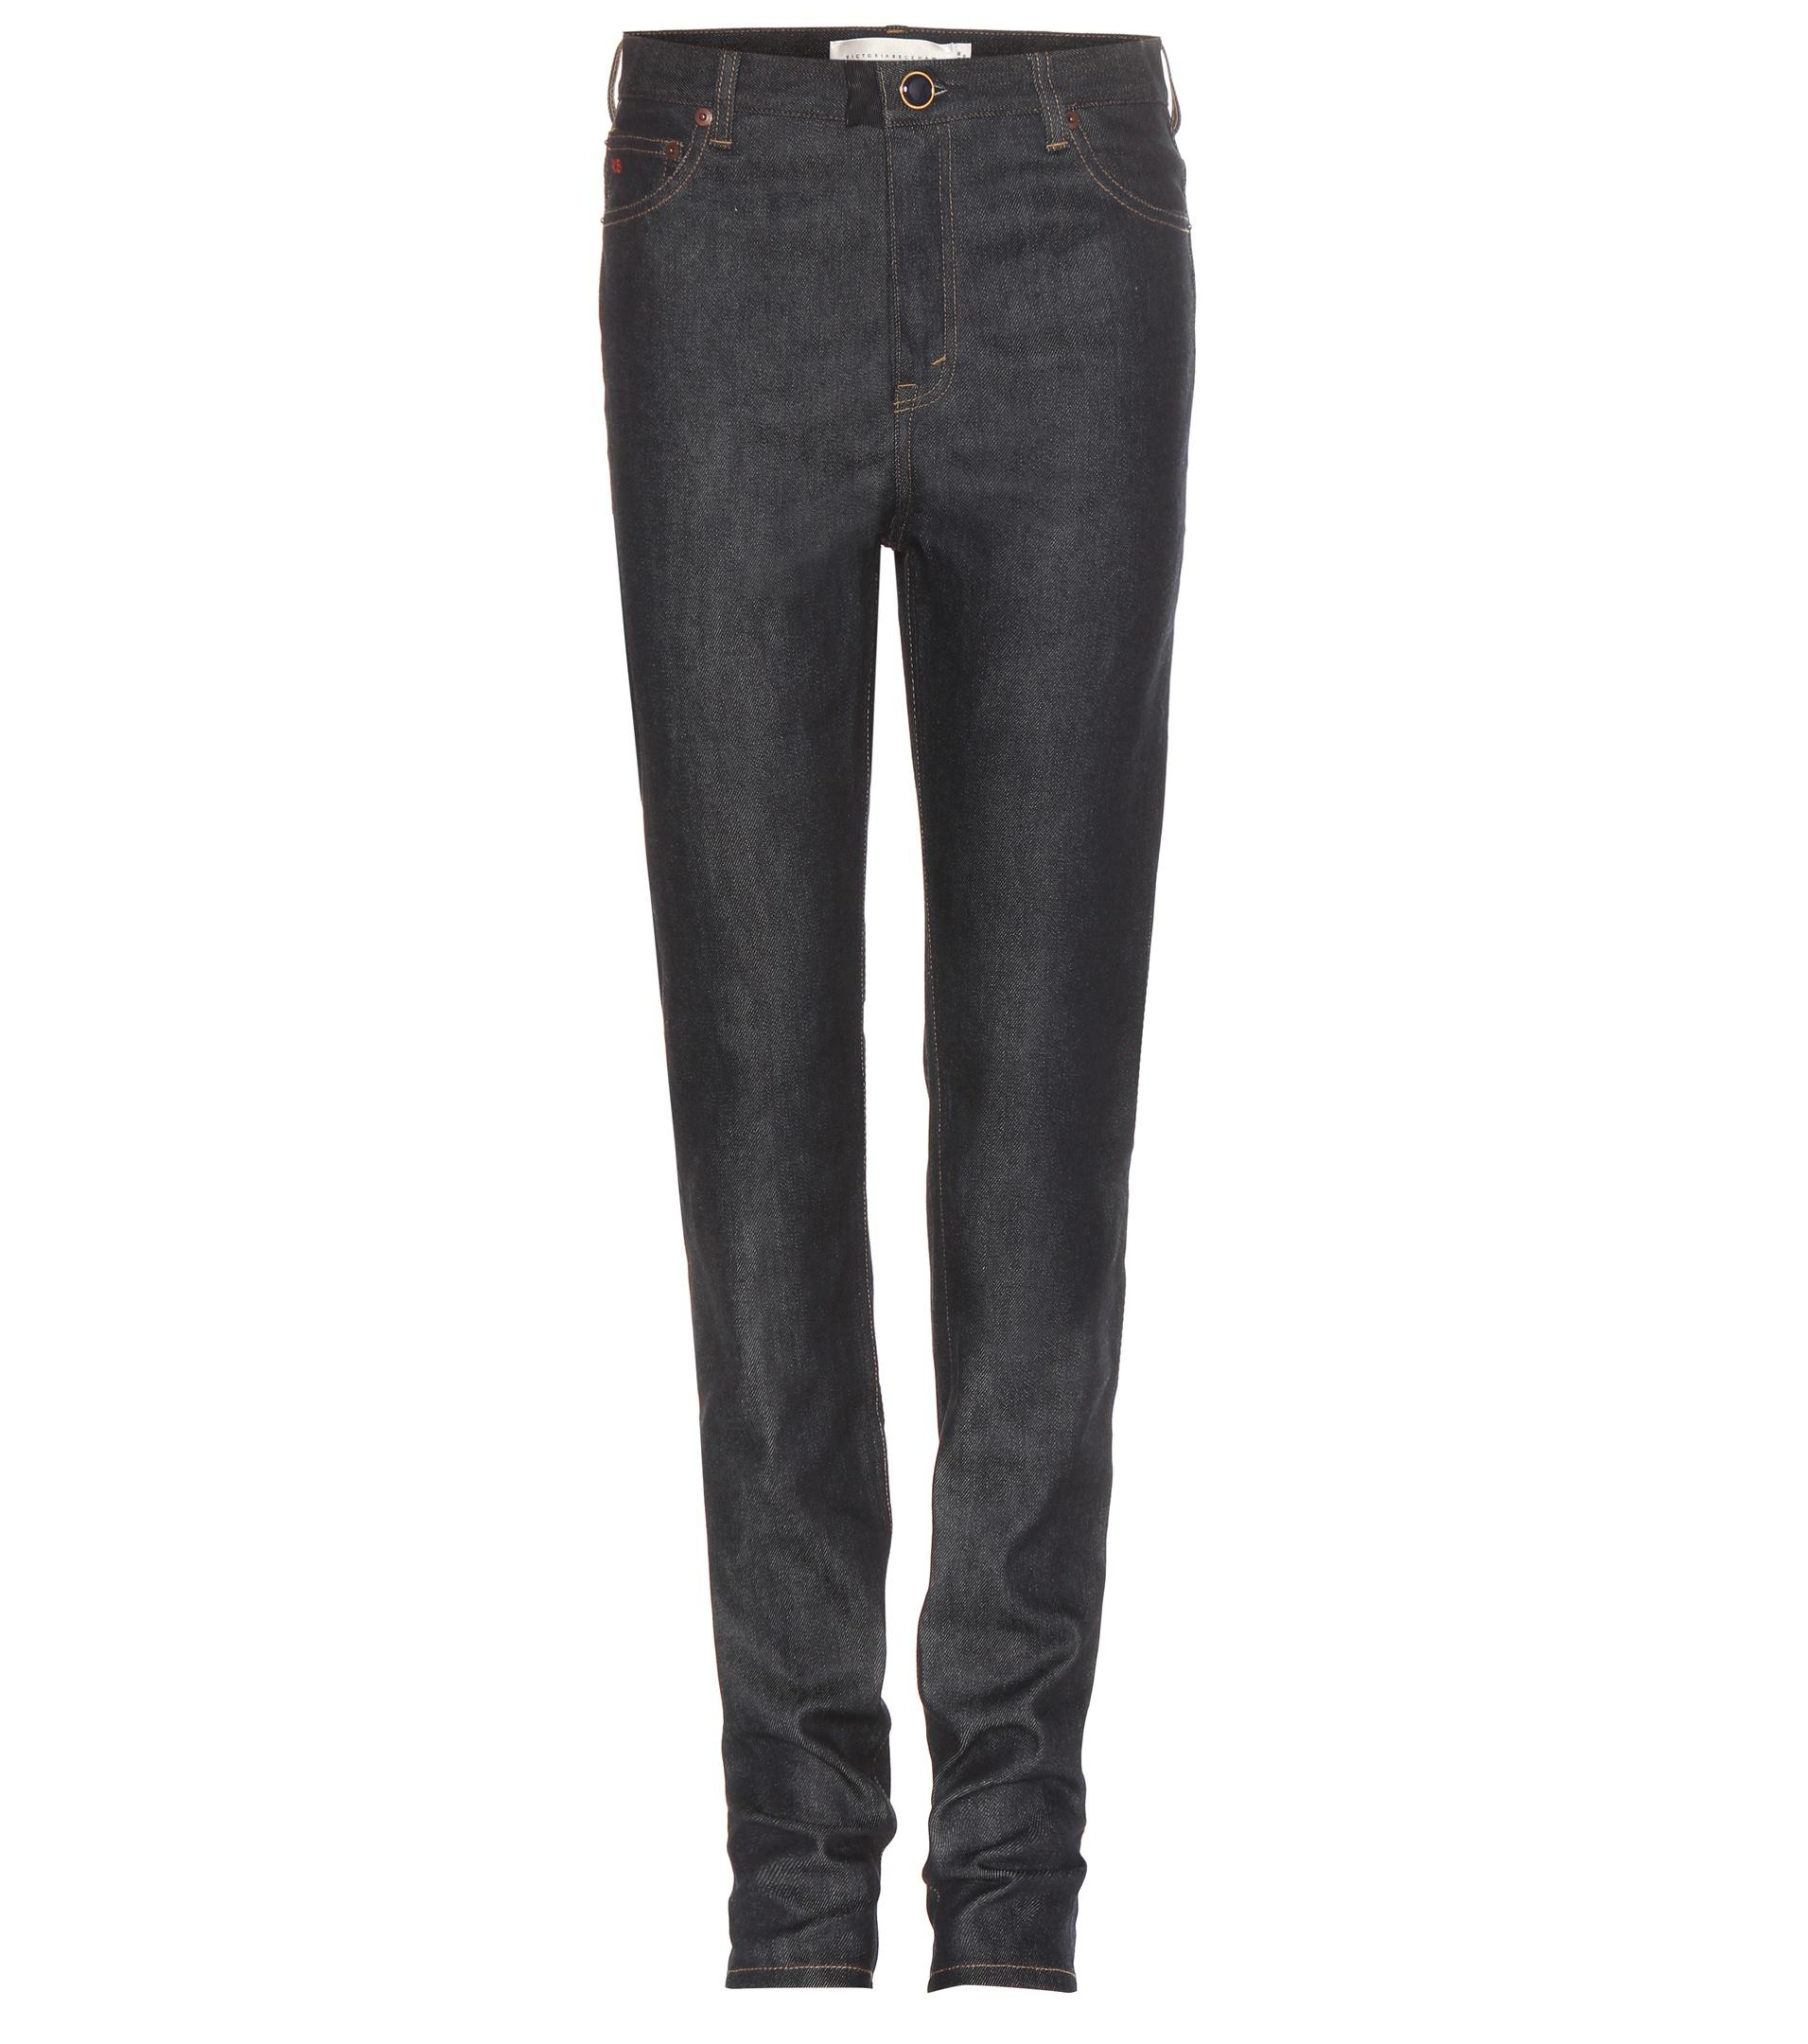 Free Shipping Genuine Sale 2018 Unisex High-waisted Slim jeans Victoria Beckham Footlocker Pictures Online Clearance Outlet Locations Buy Cheap Latest XwGRQxz